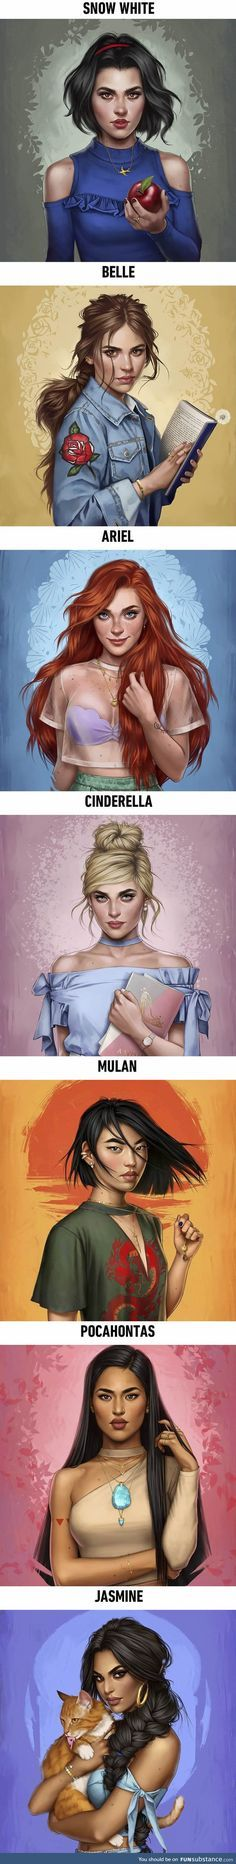 Disney princesses as modern day girls living now